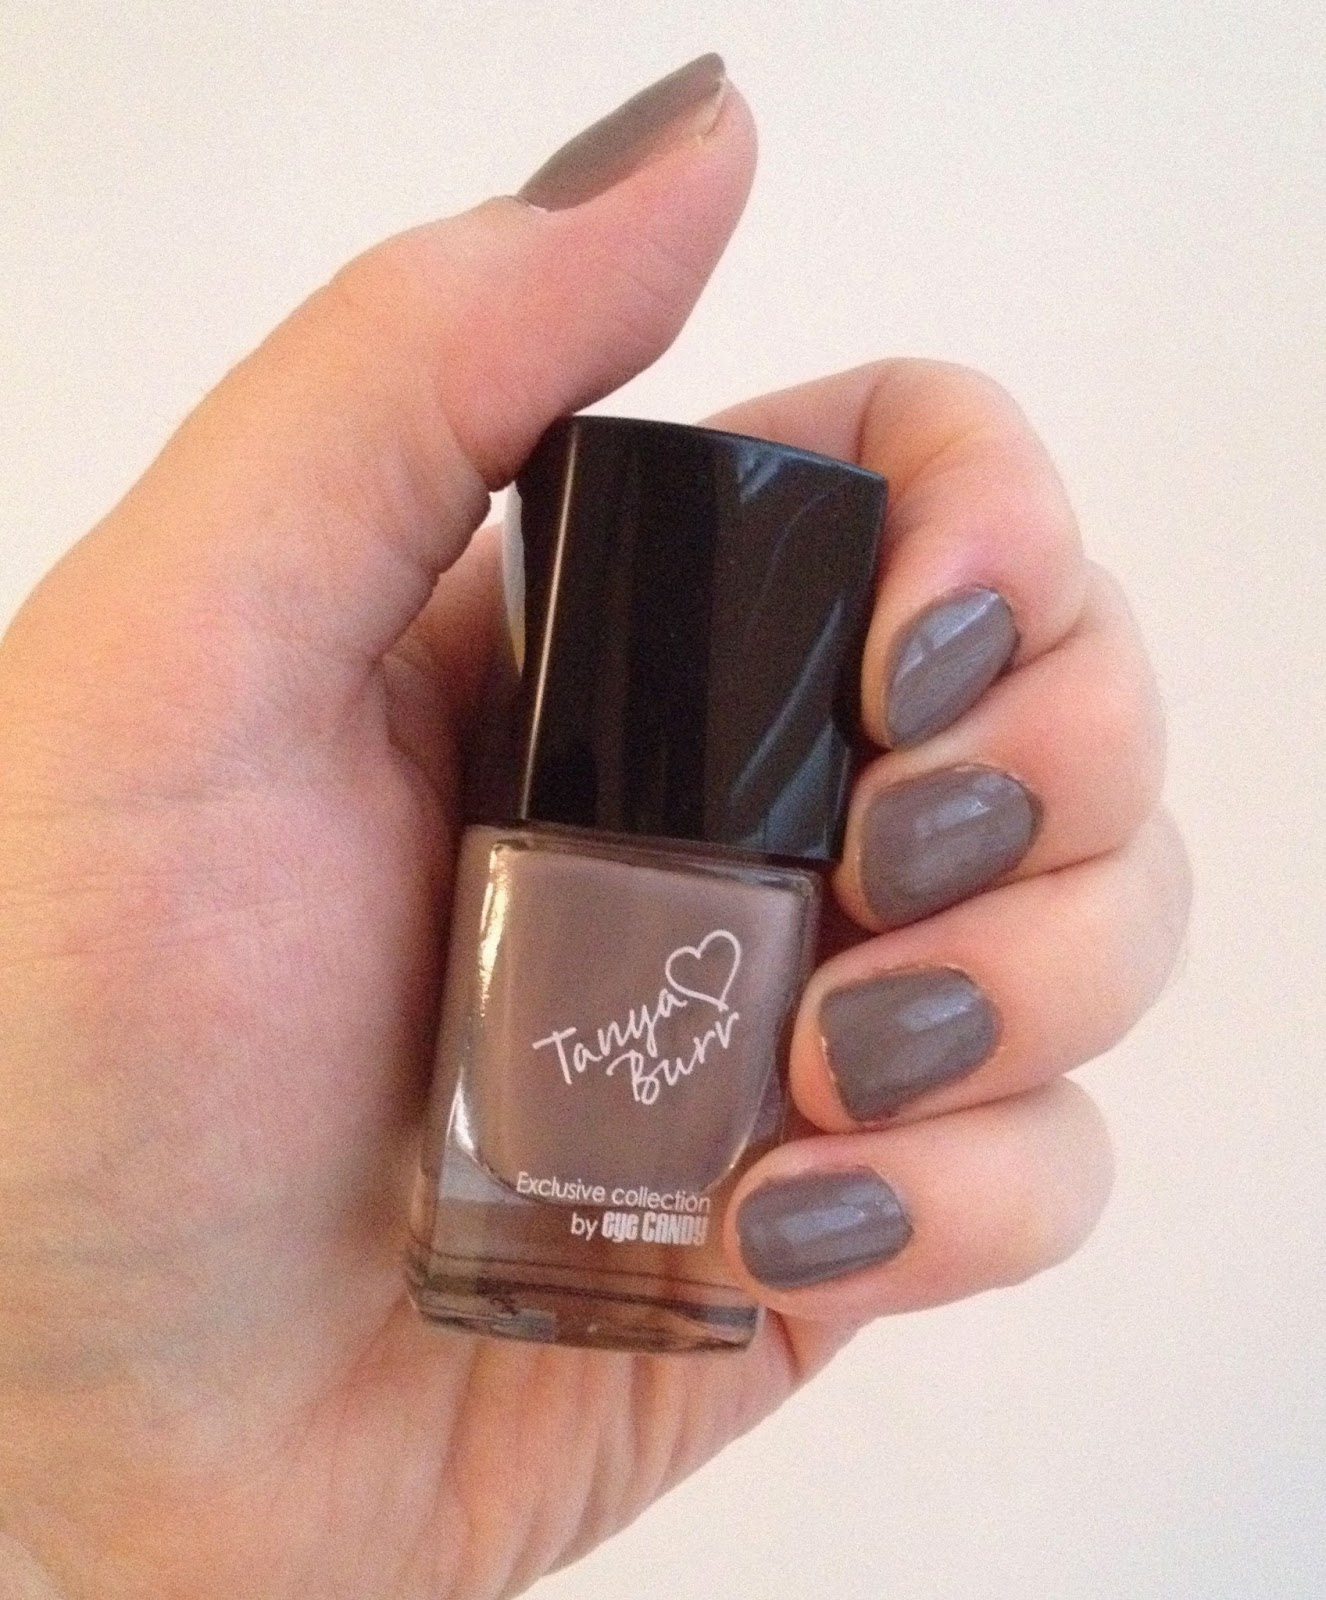 Tanya Burr Nails Nail Polish Penguin Chic